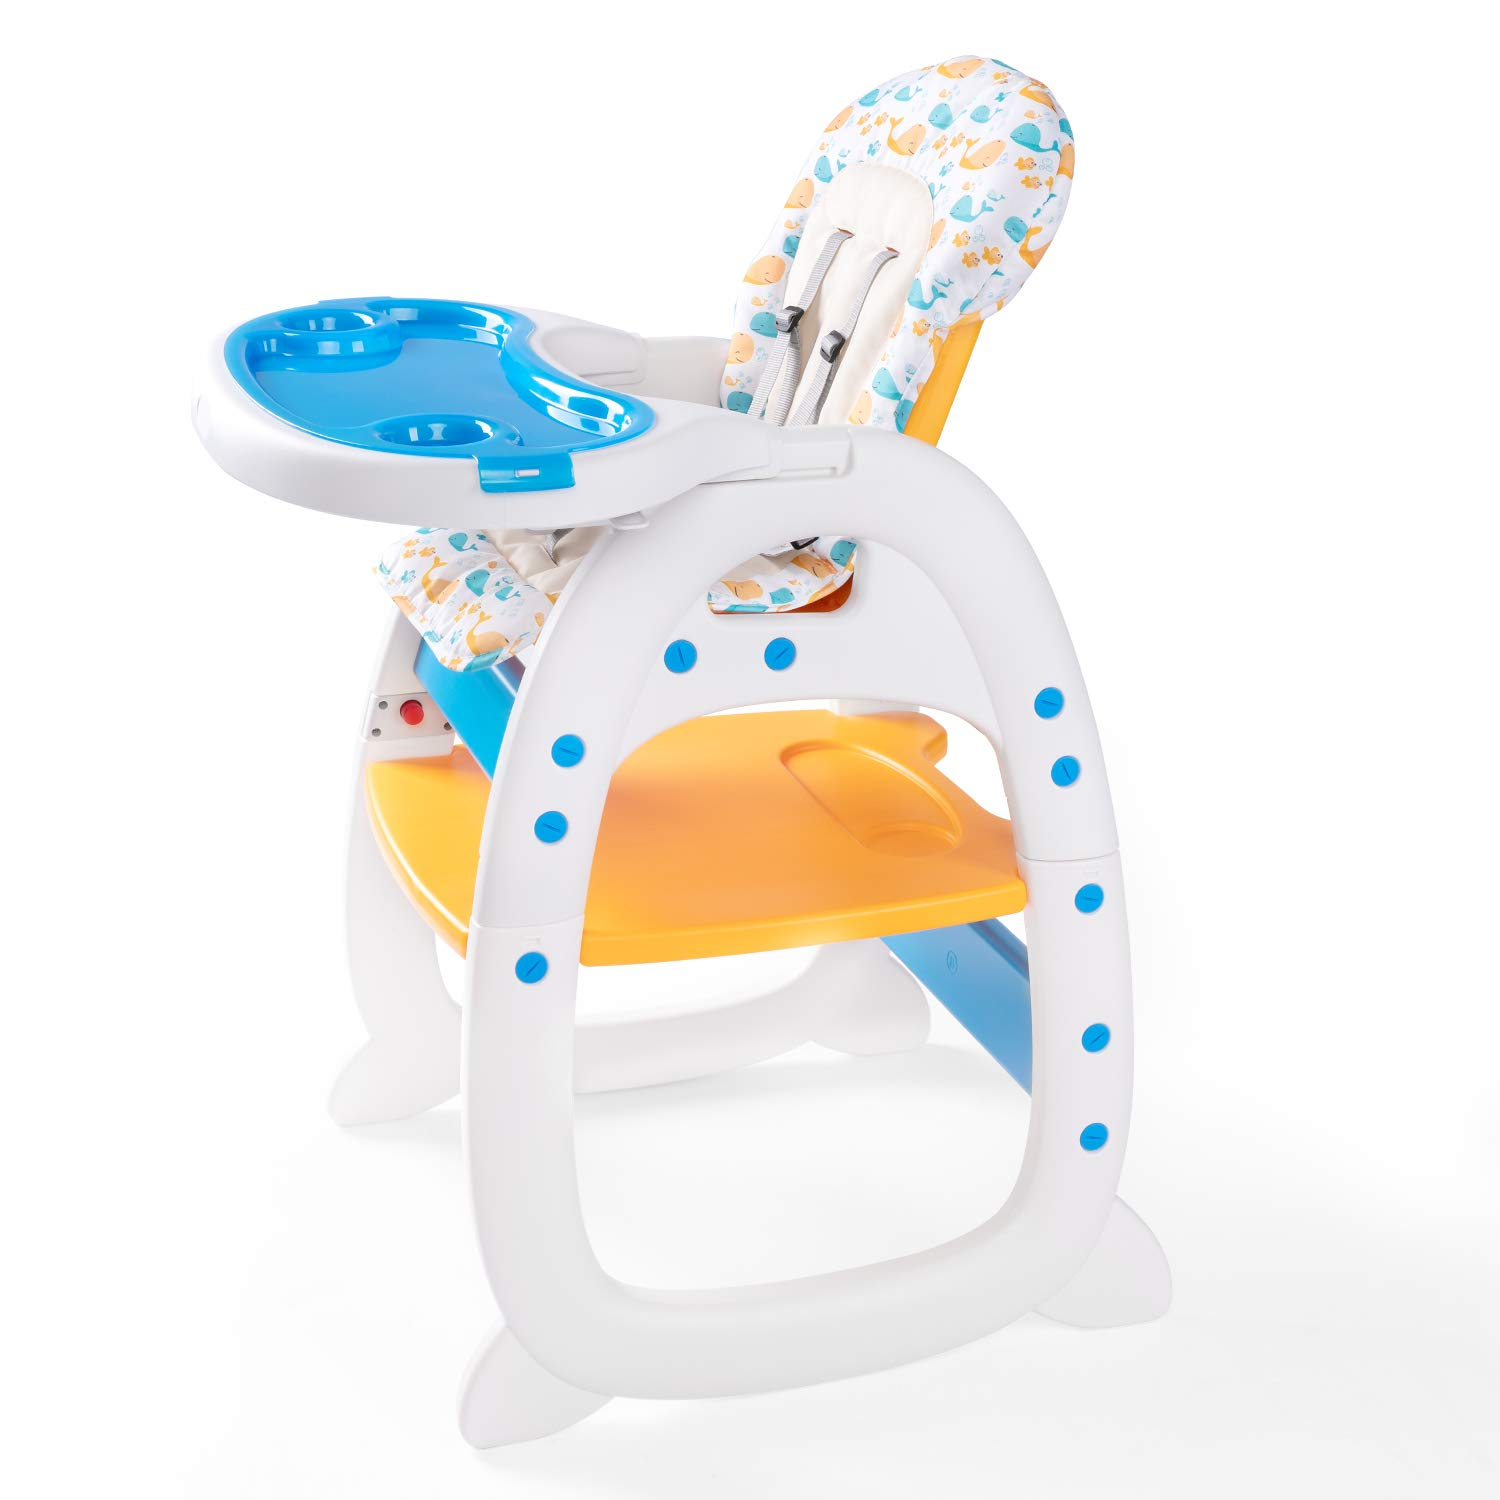 BAHOM 3 in 1 Portable Baby High Chair, Convertible Play Table Set, Booster Rocking Seat, 5-Point Harness, Removable Tray